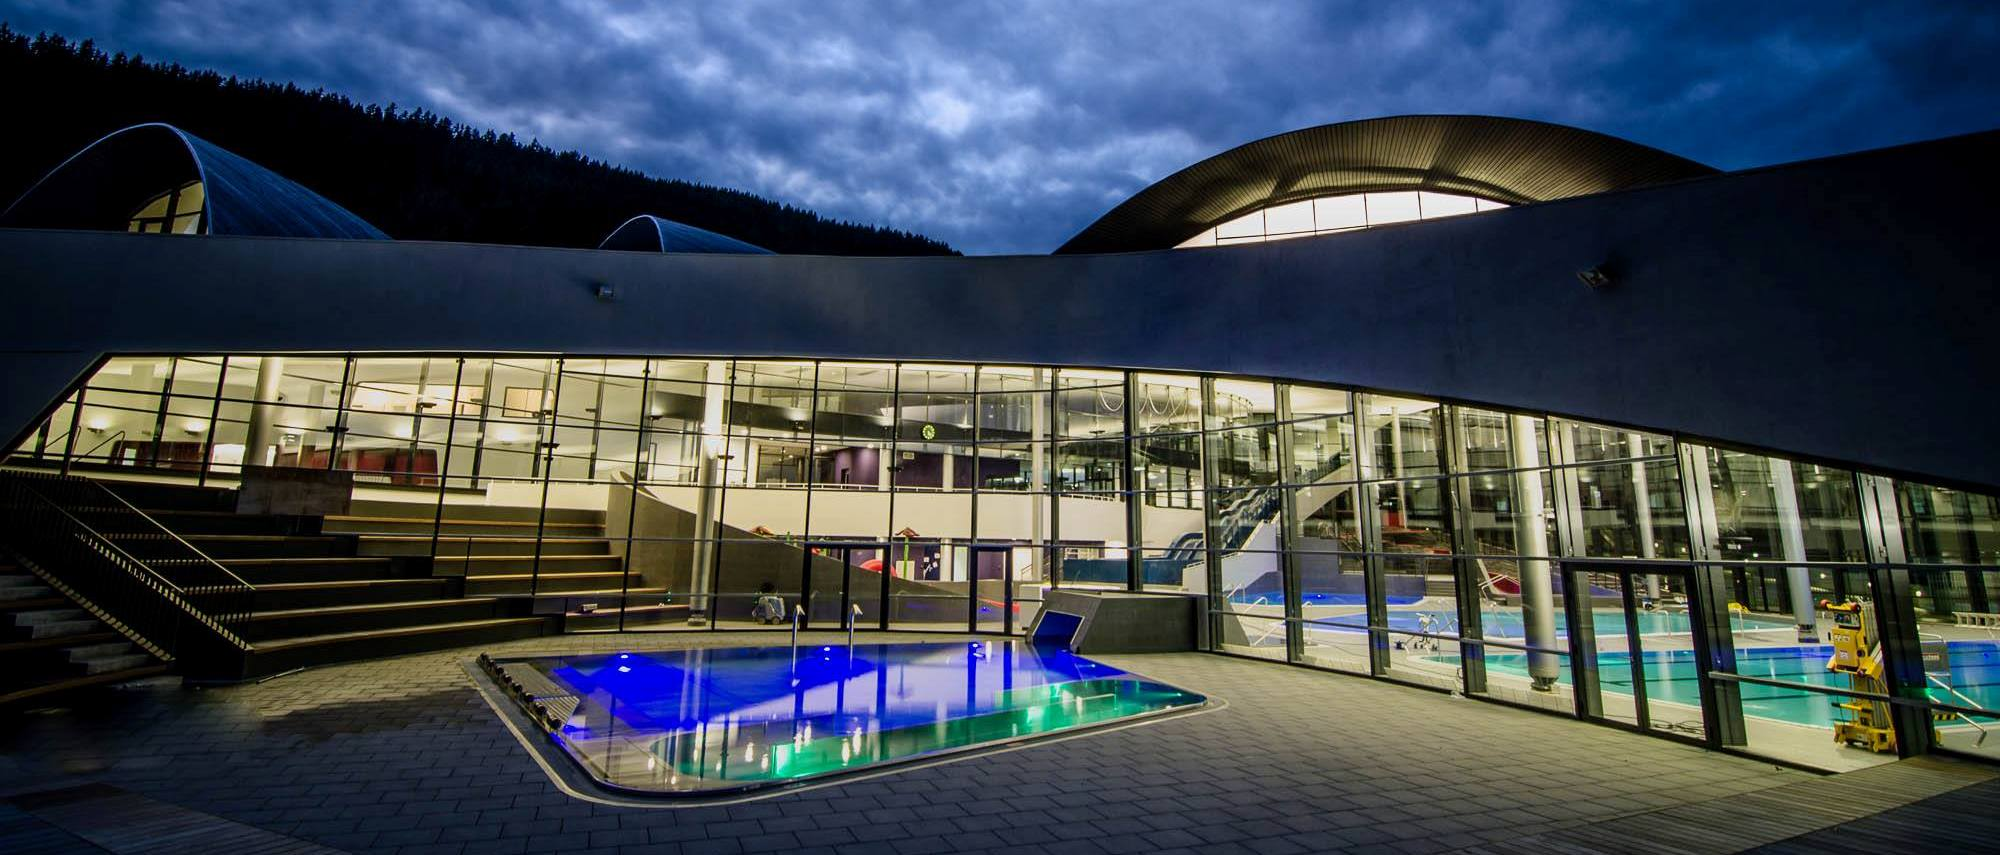 Introducing Aquamotion – Courchevel's stunning swimming complex